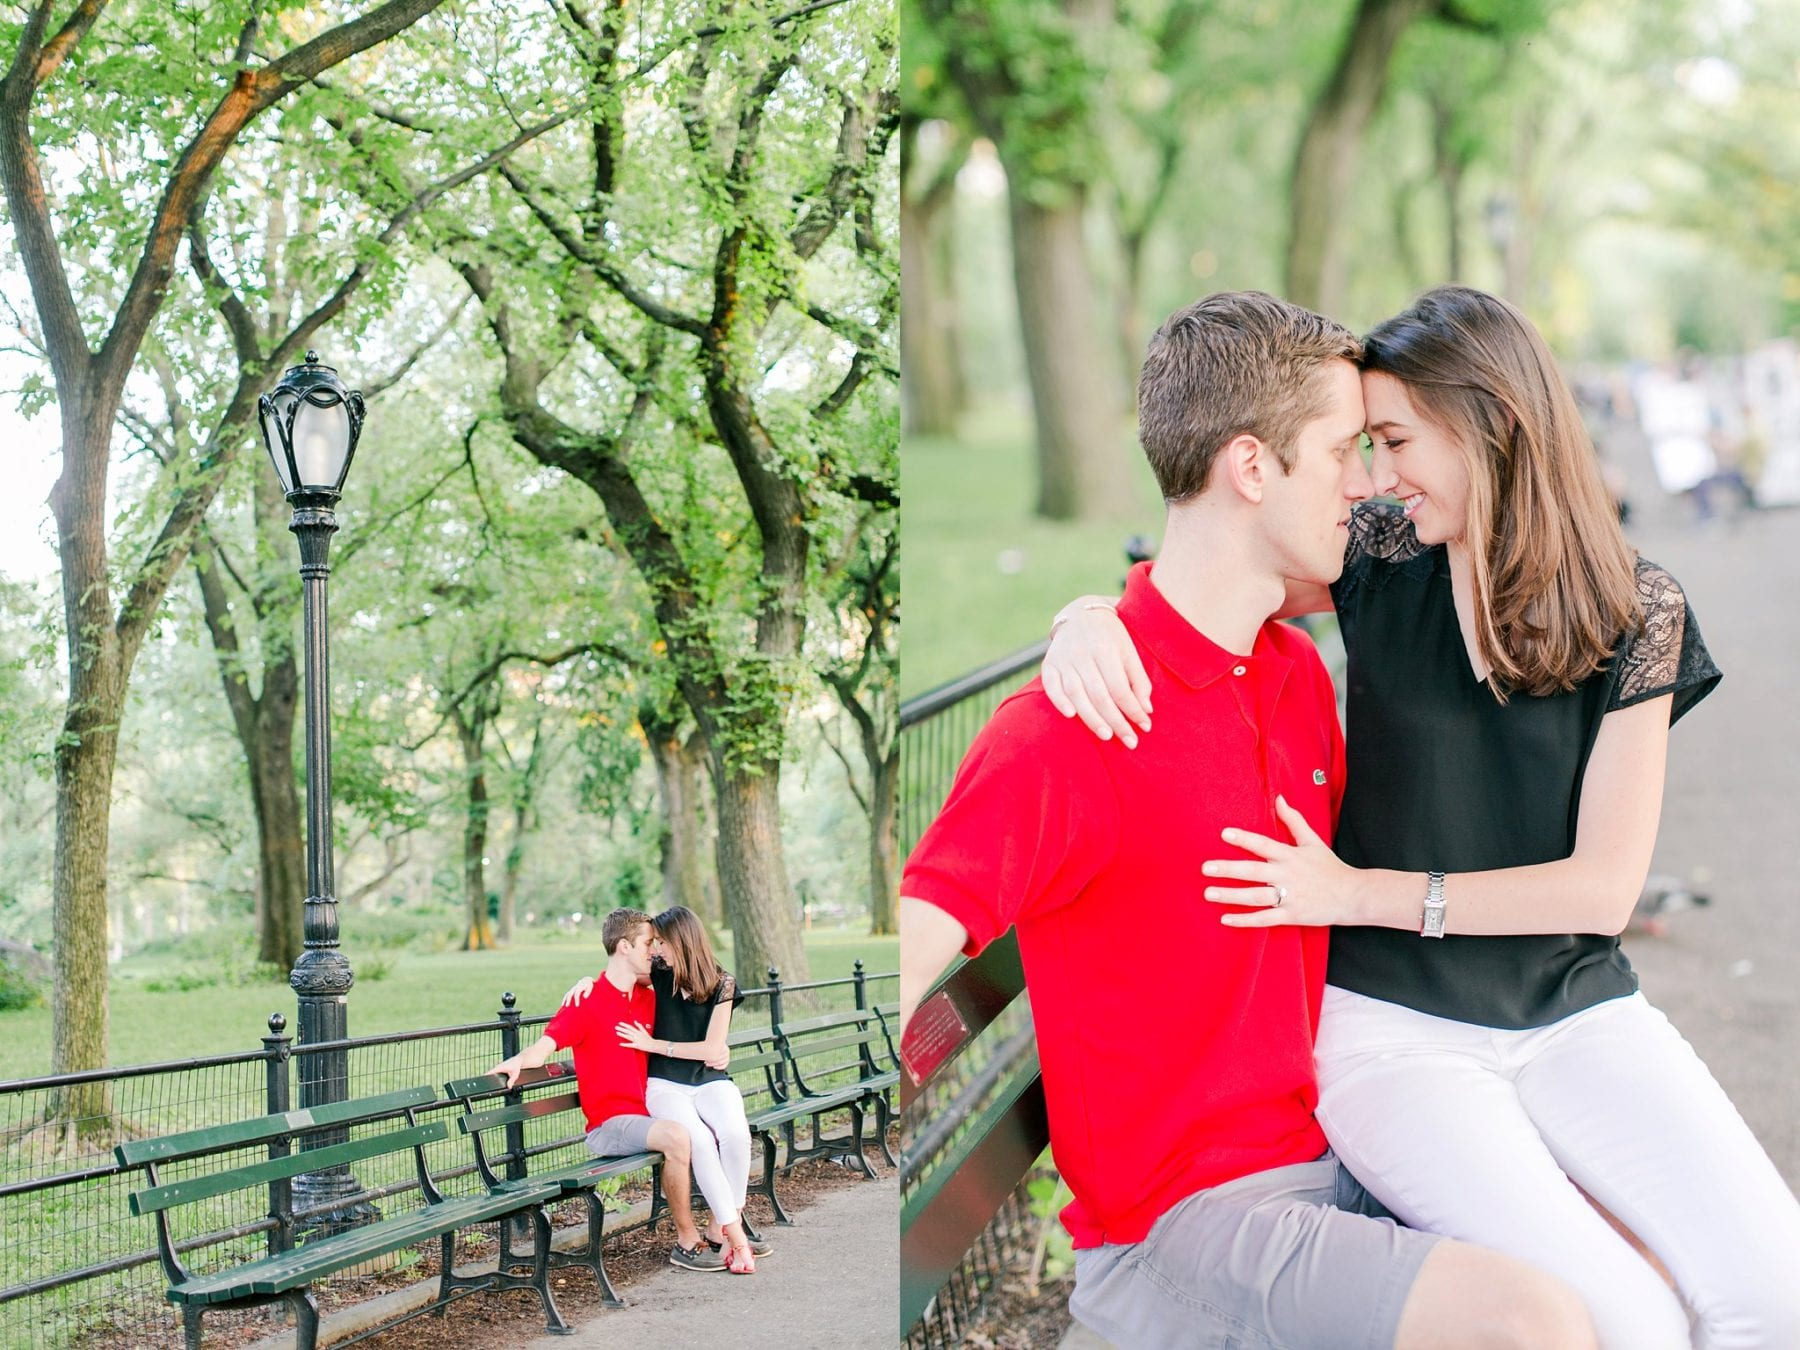 West Village Central Park Engagement Photos NYC Wedding Photographer Megan Kelsey Photography-232.jpg